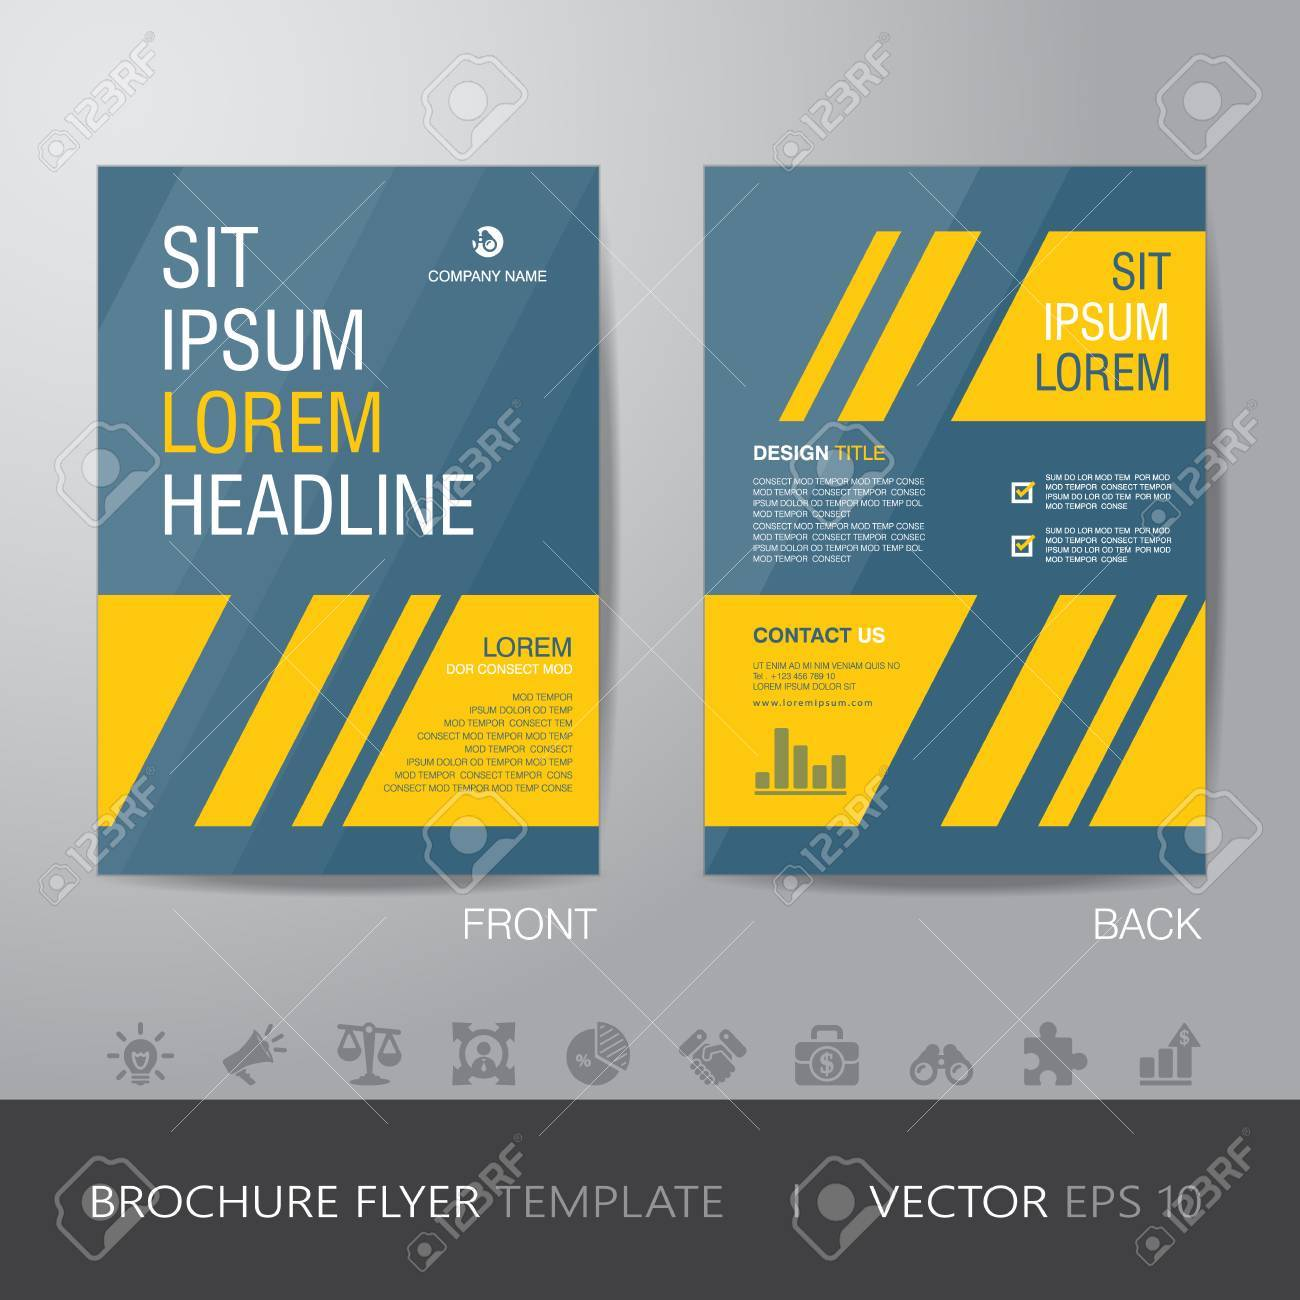 simple business yellow and blue brochure flyer design layout template in a4 size with bleed